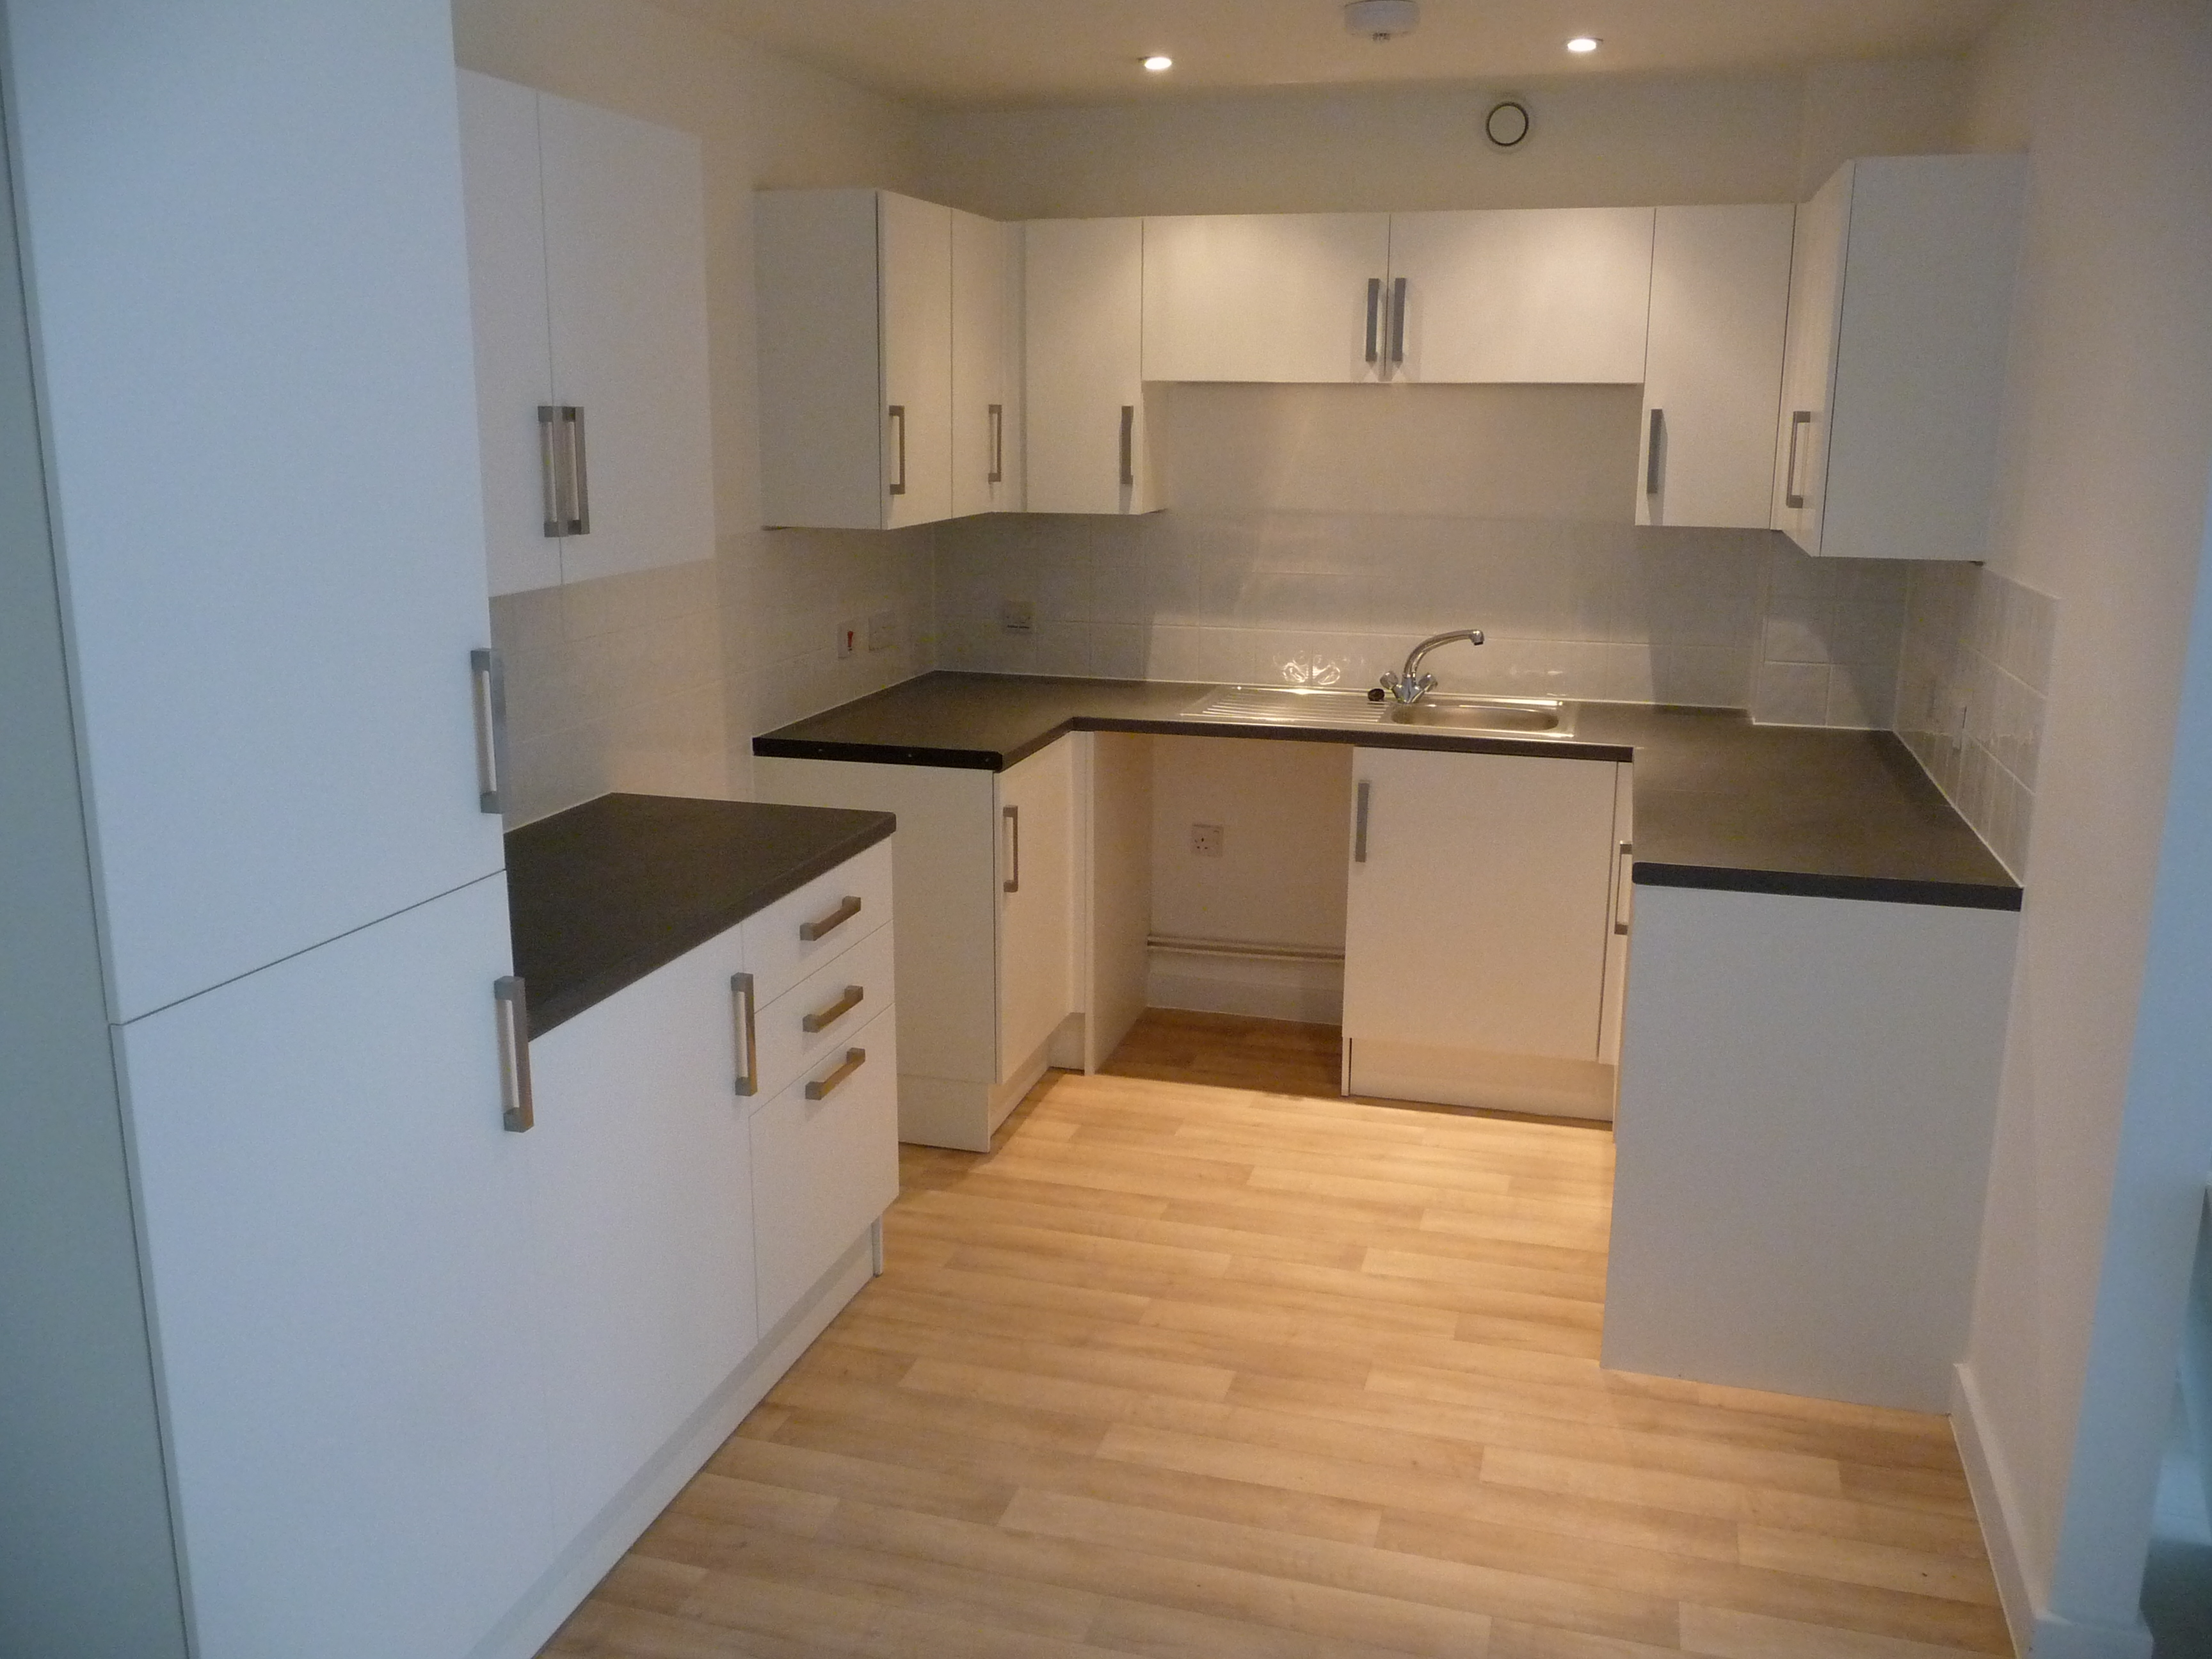 The Works Carried Out Included The Dry Fit Of All Base And Wall Units;  Inclusive Of Worktops And In Some Kitchens, Integrated Appliances And White  Goods.